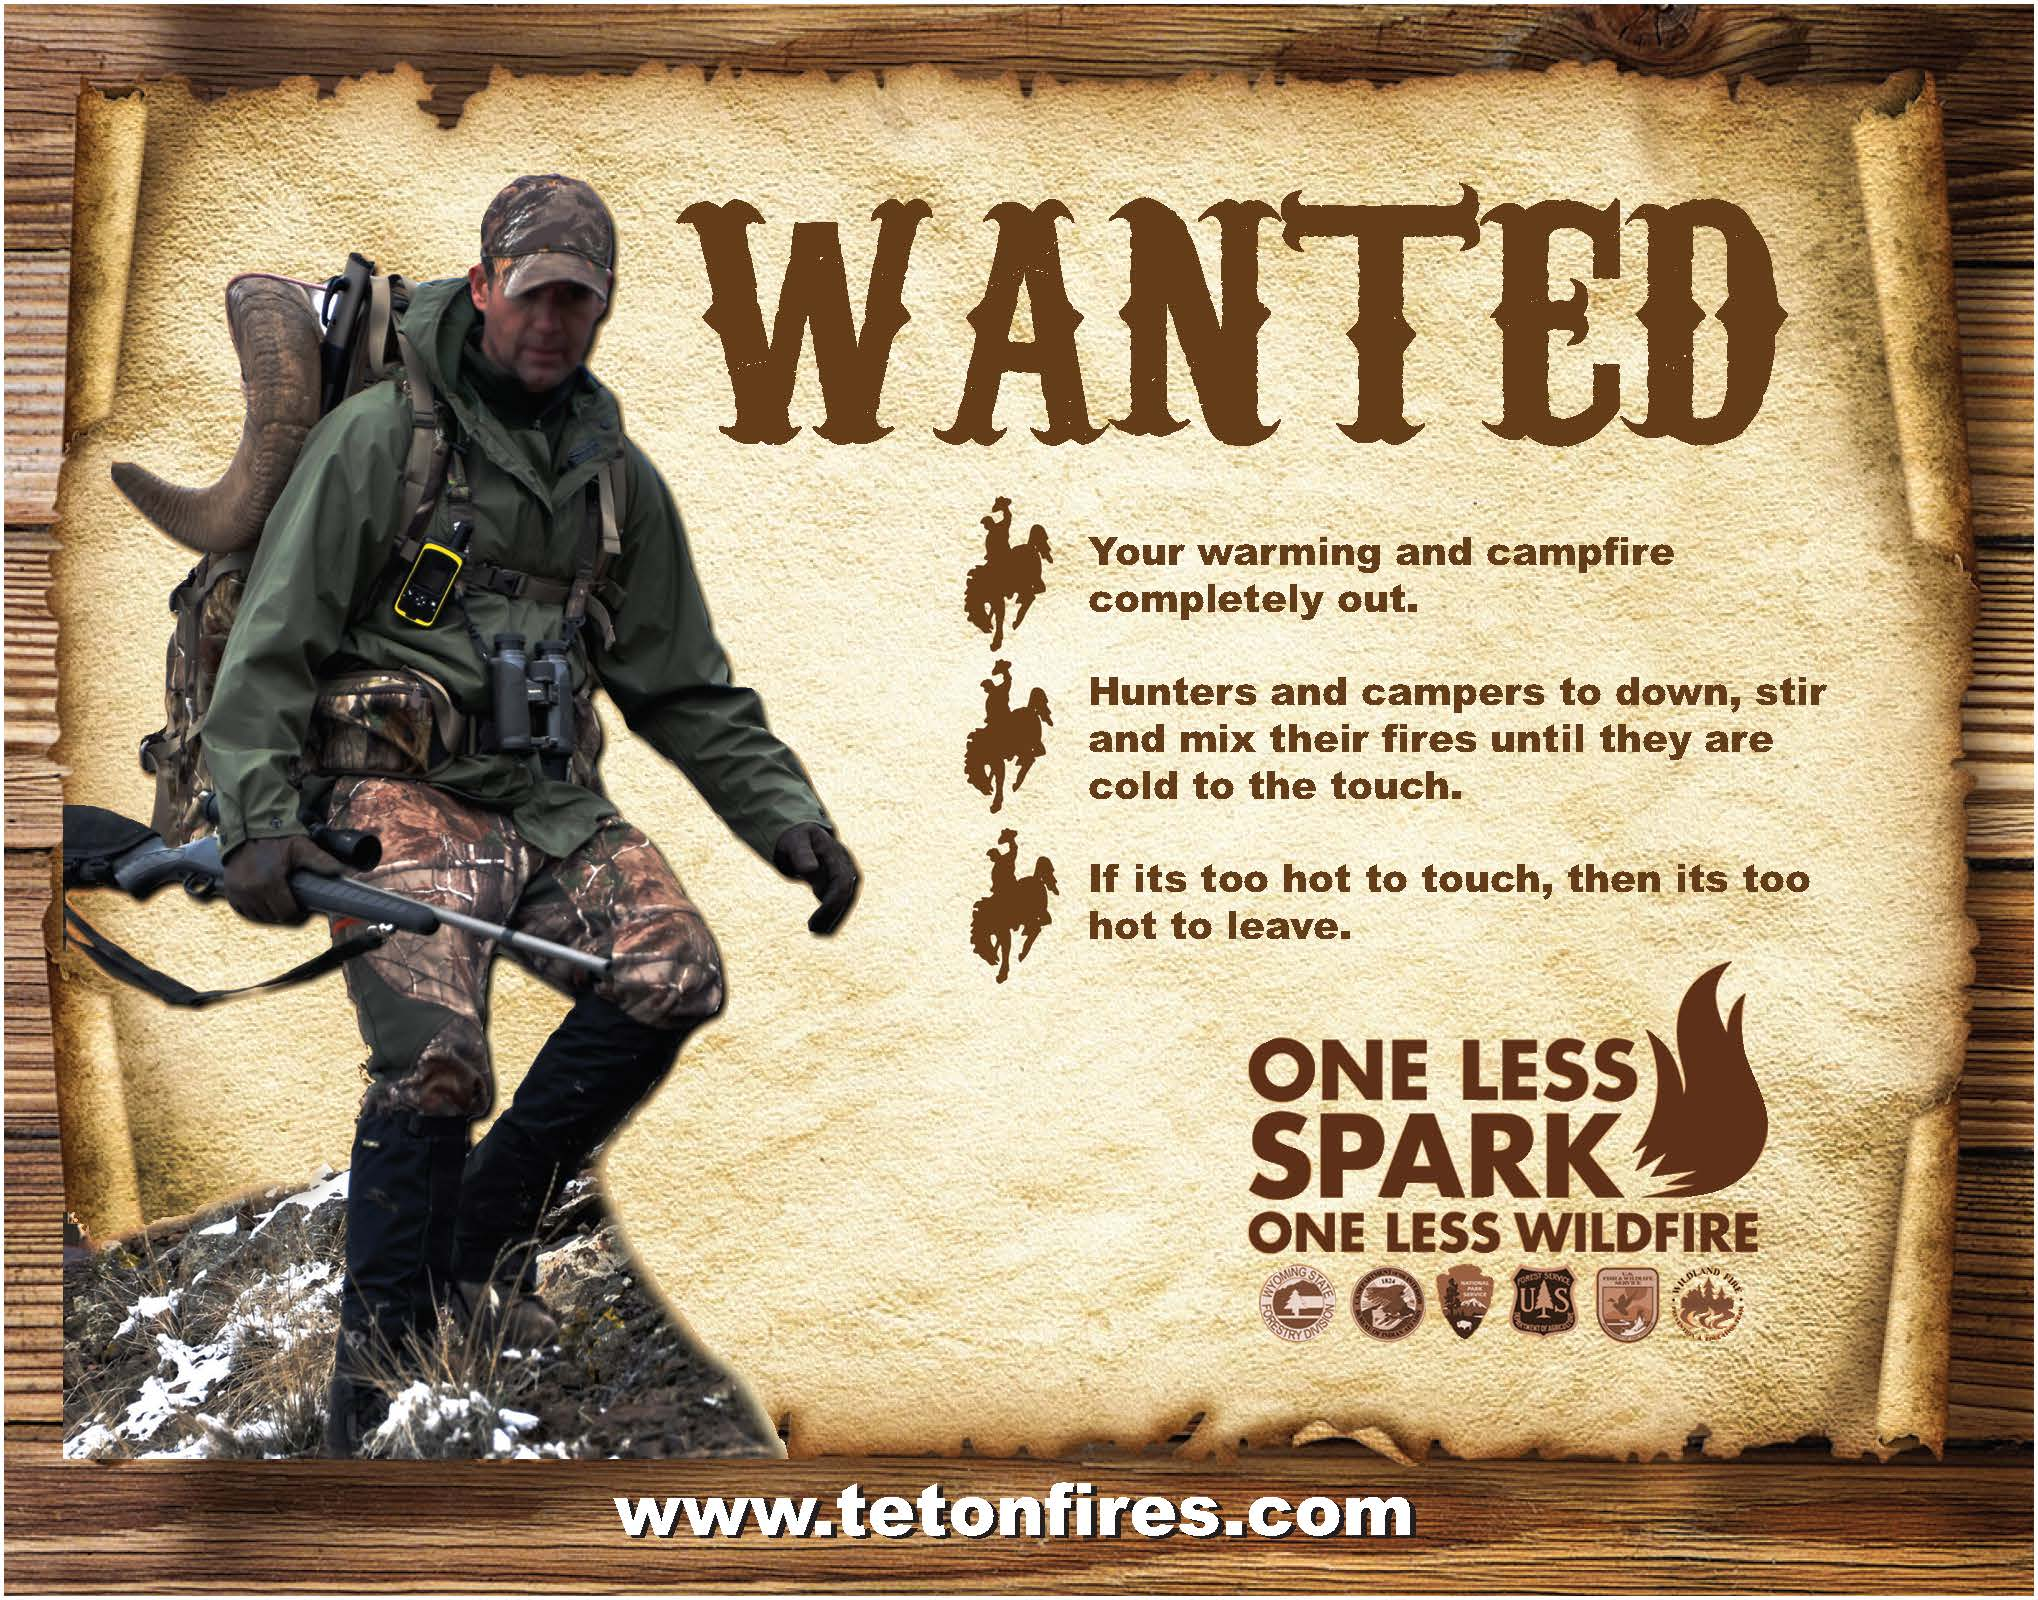 Wanted: Extinguish warming fires poster, too cold to touch, too cold to leave.